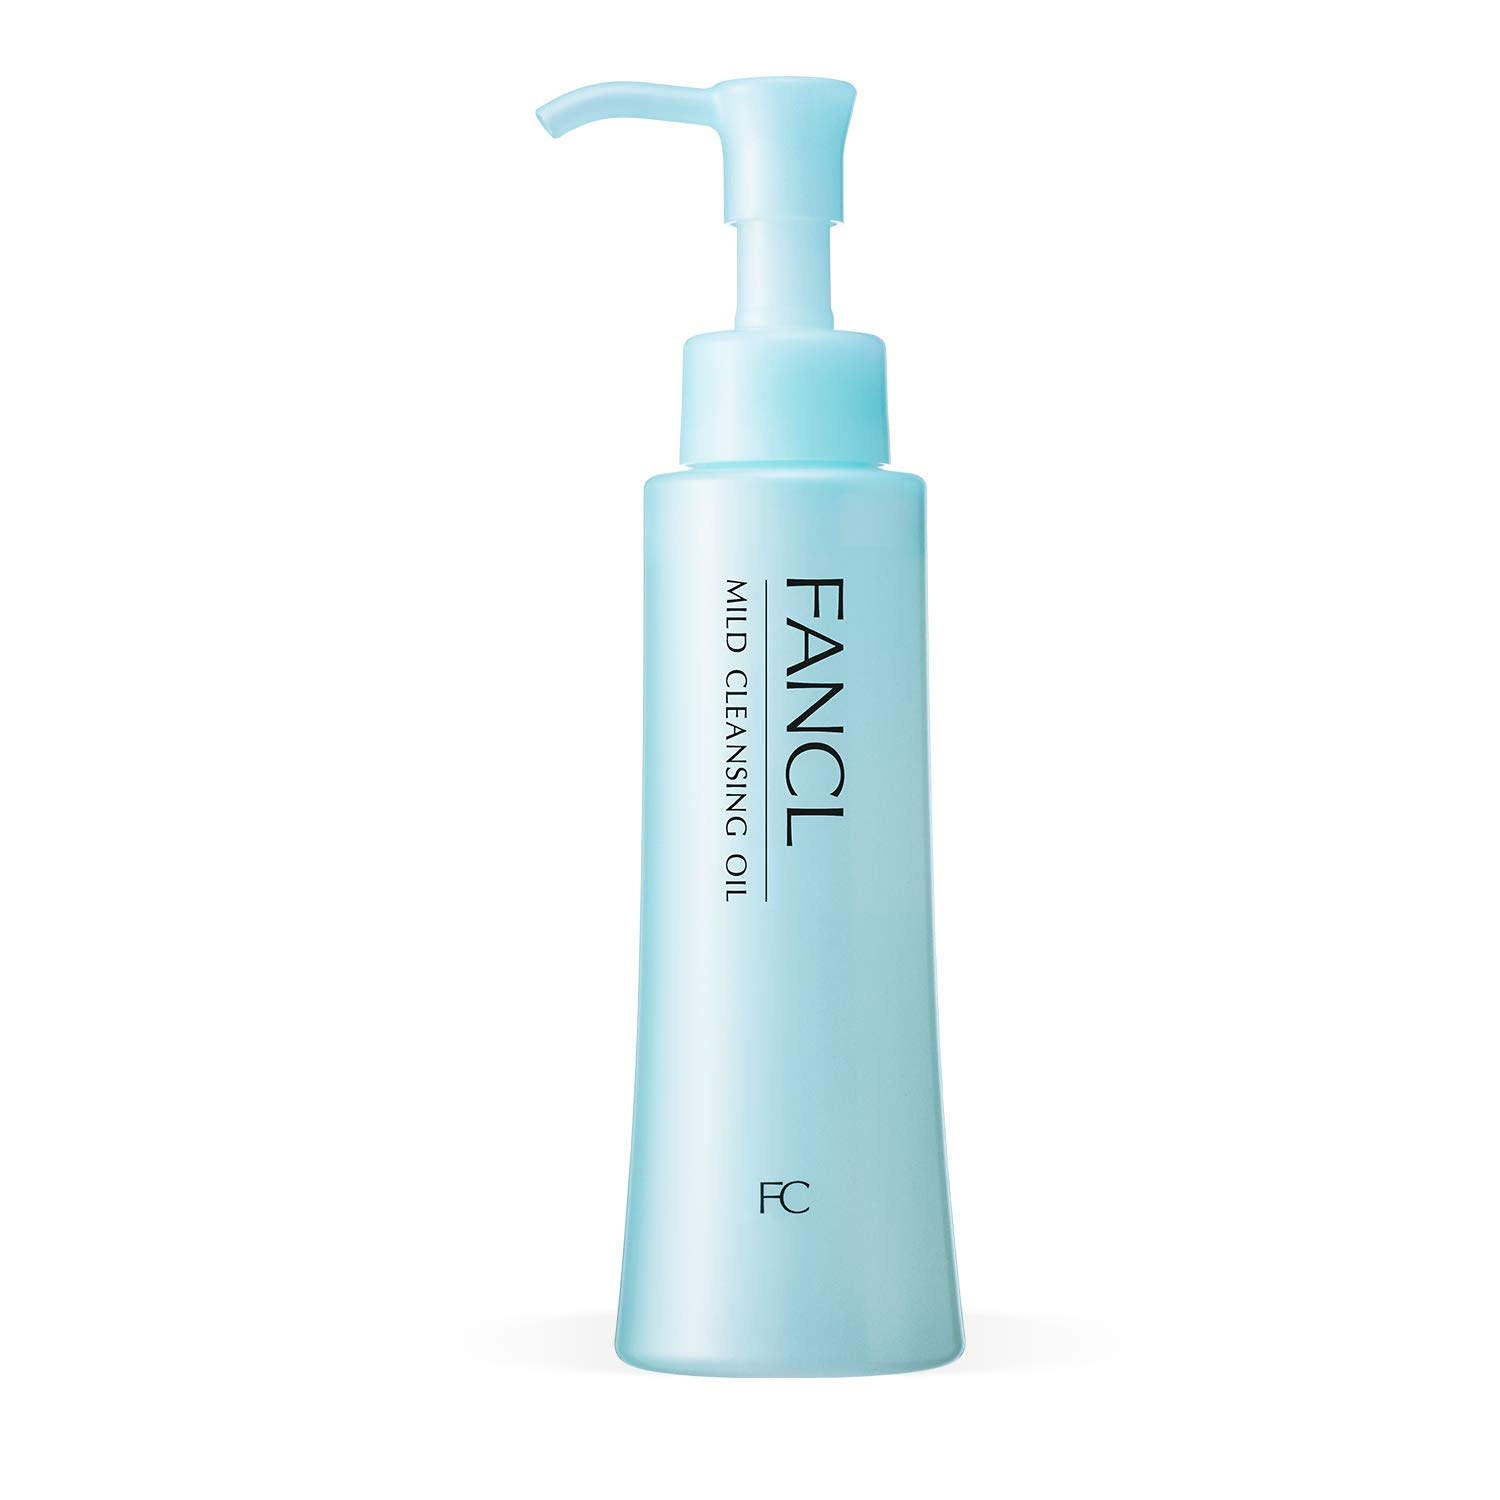 FANCL Mild Cleansing Oil - 25% OFF Free Skincar Clean 100% Preservative Selling and selling